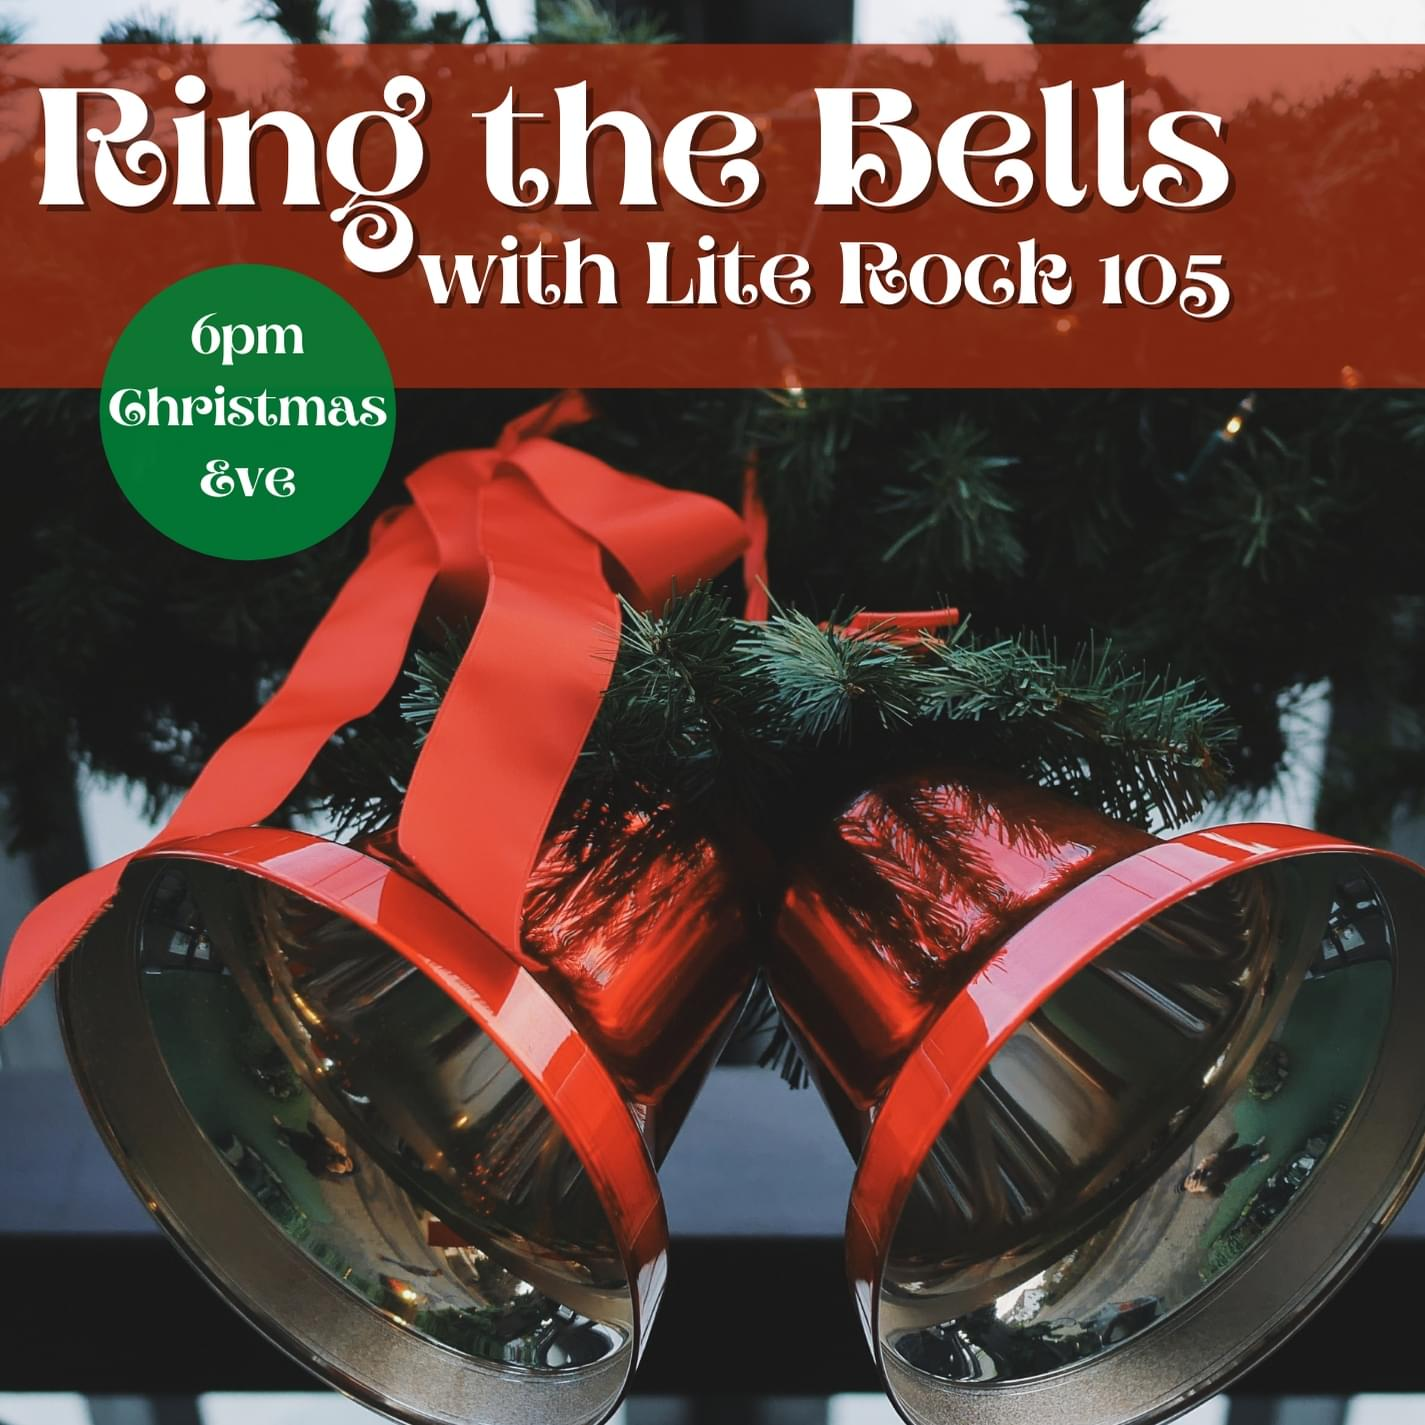 RING THE BELLS with Lite Rock 105!